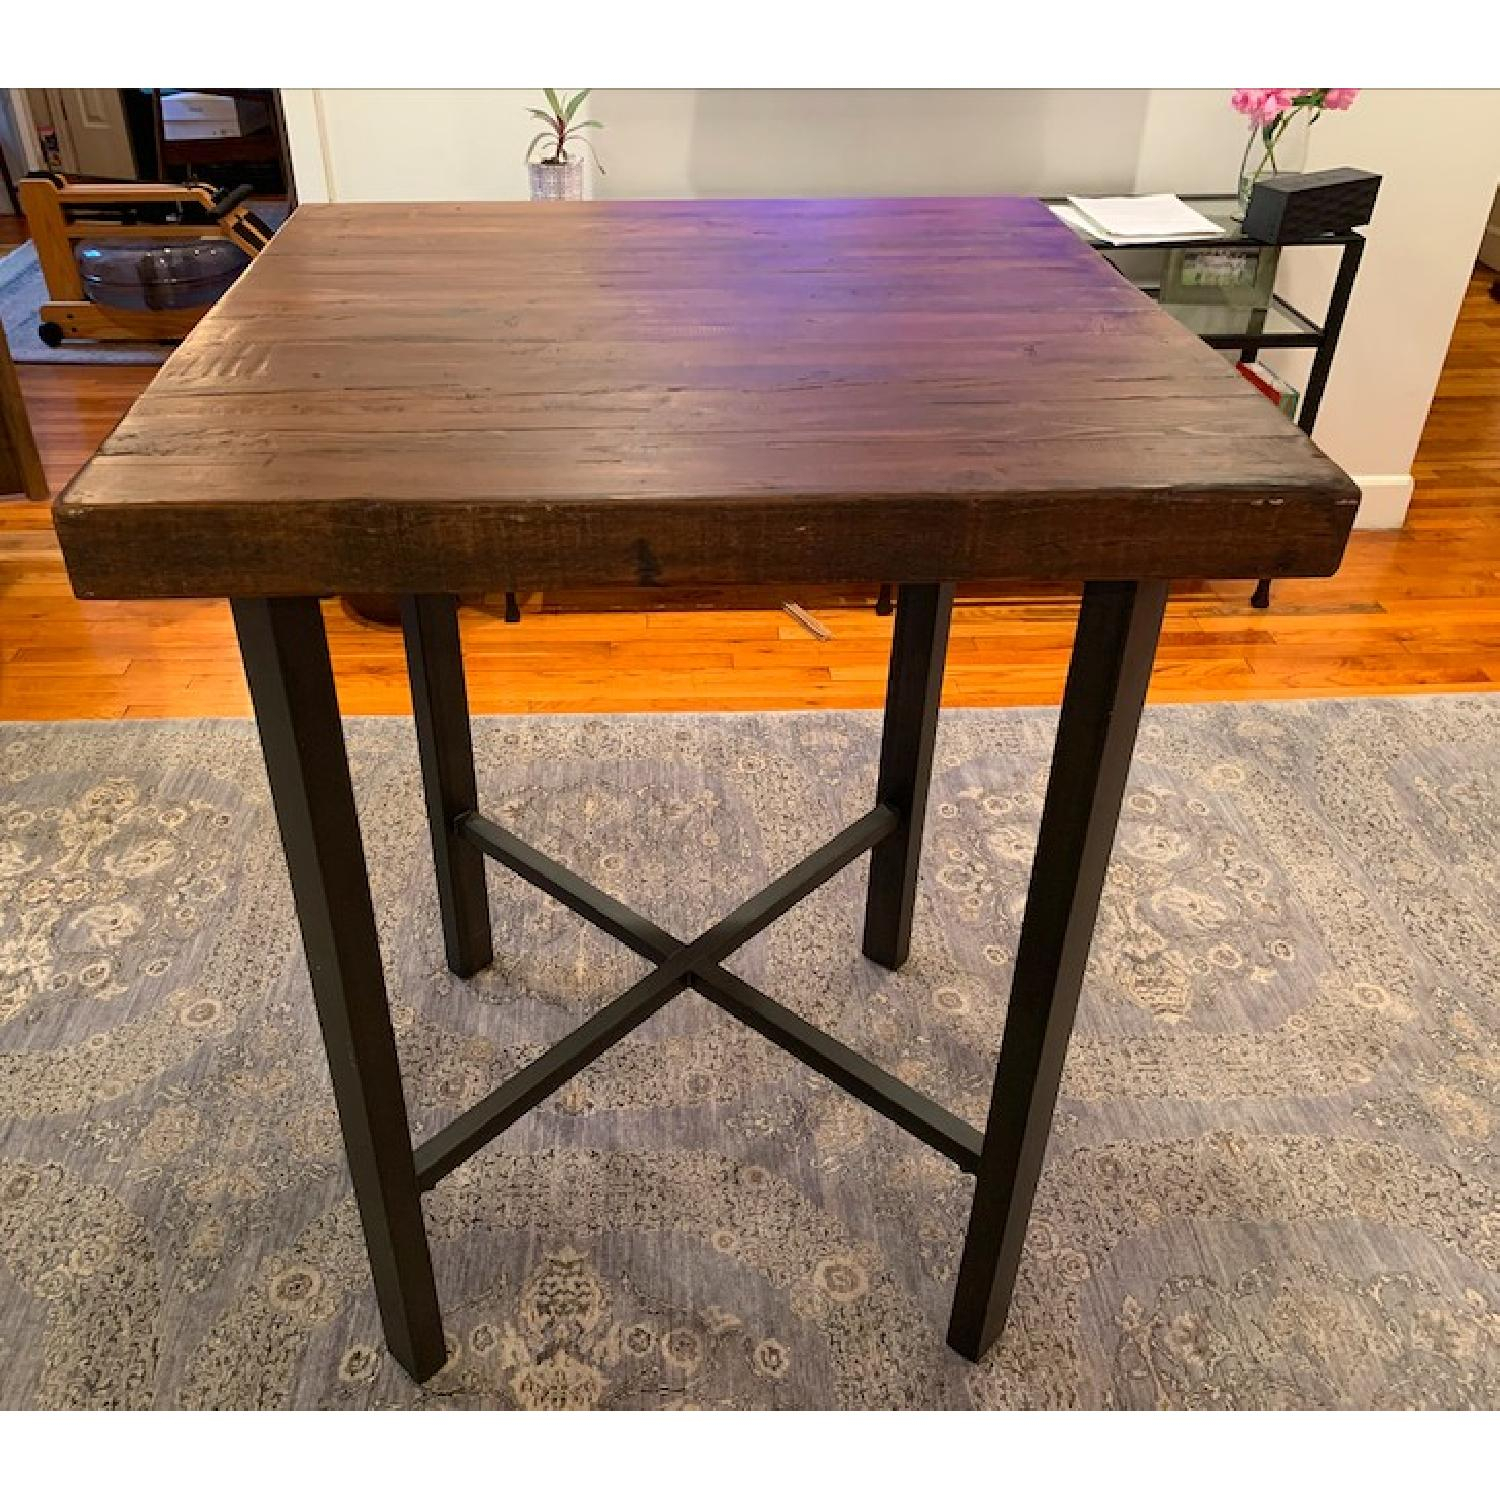 Pottery Barn Griffin Bar Table W/ 4 Stools – Aptdeco Inside Newest Griffin Reclaimed Wood Dining Tables (View 23 of 25)